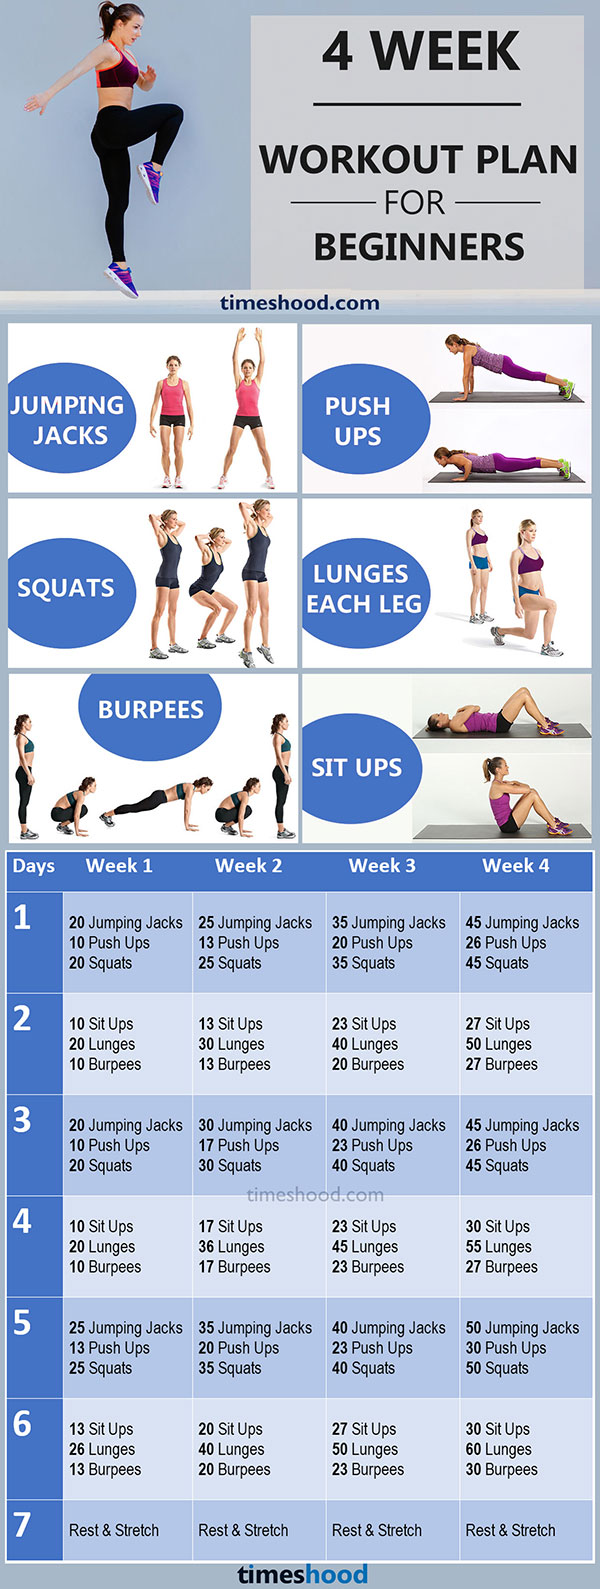 4 Week Workout Plan For Beginners Weight Loss